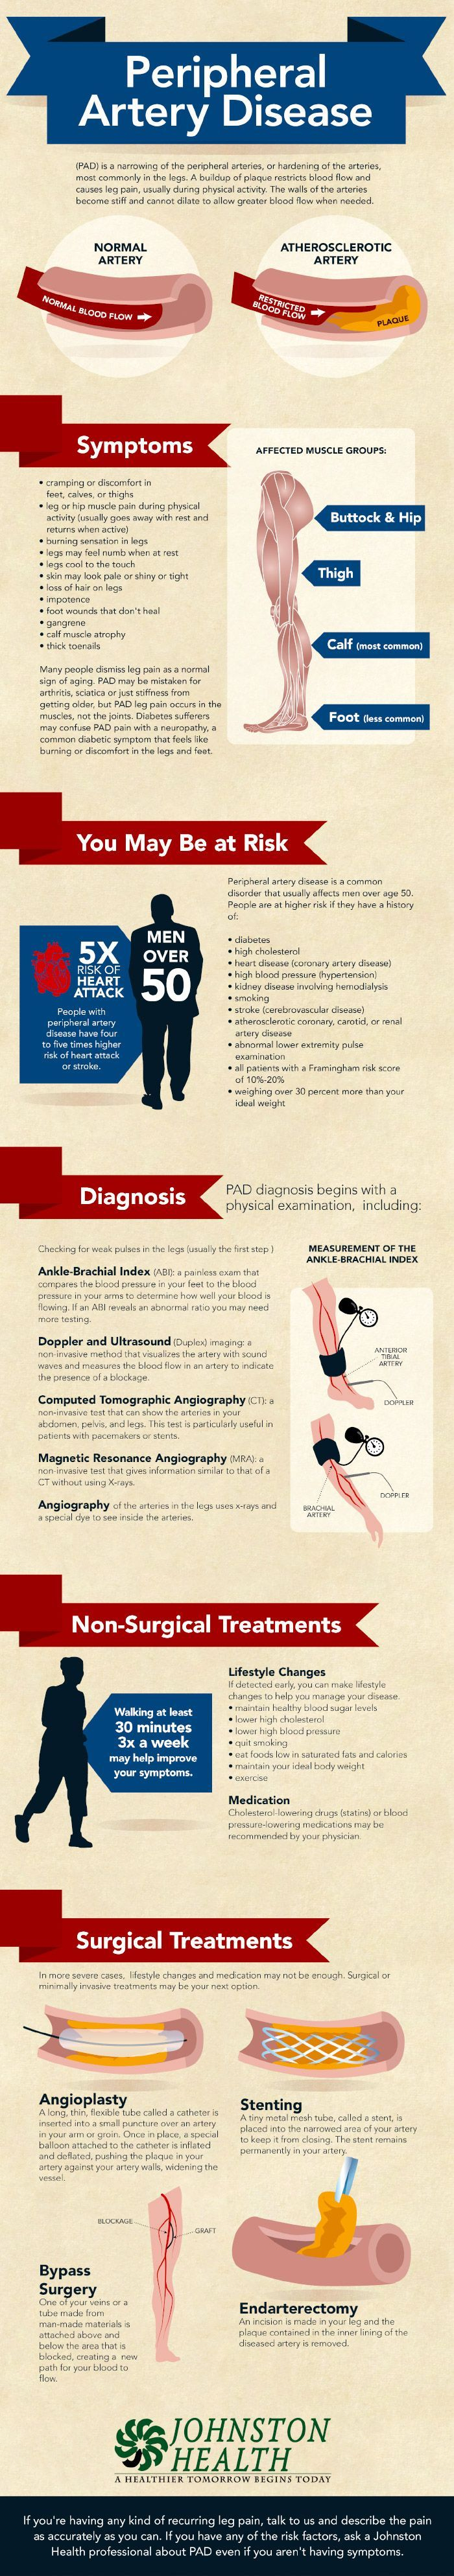 Infographic showing risk factors and symptoms of peripheral artery disease.